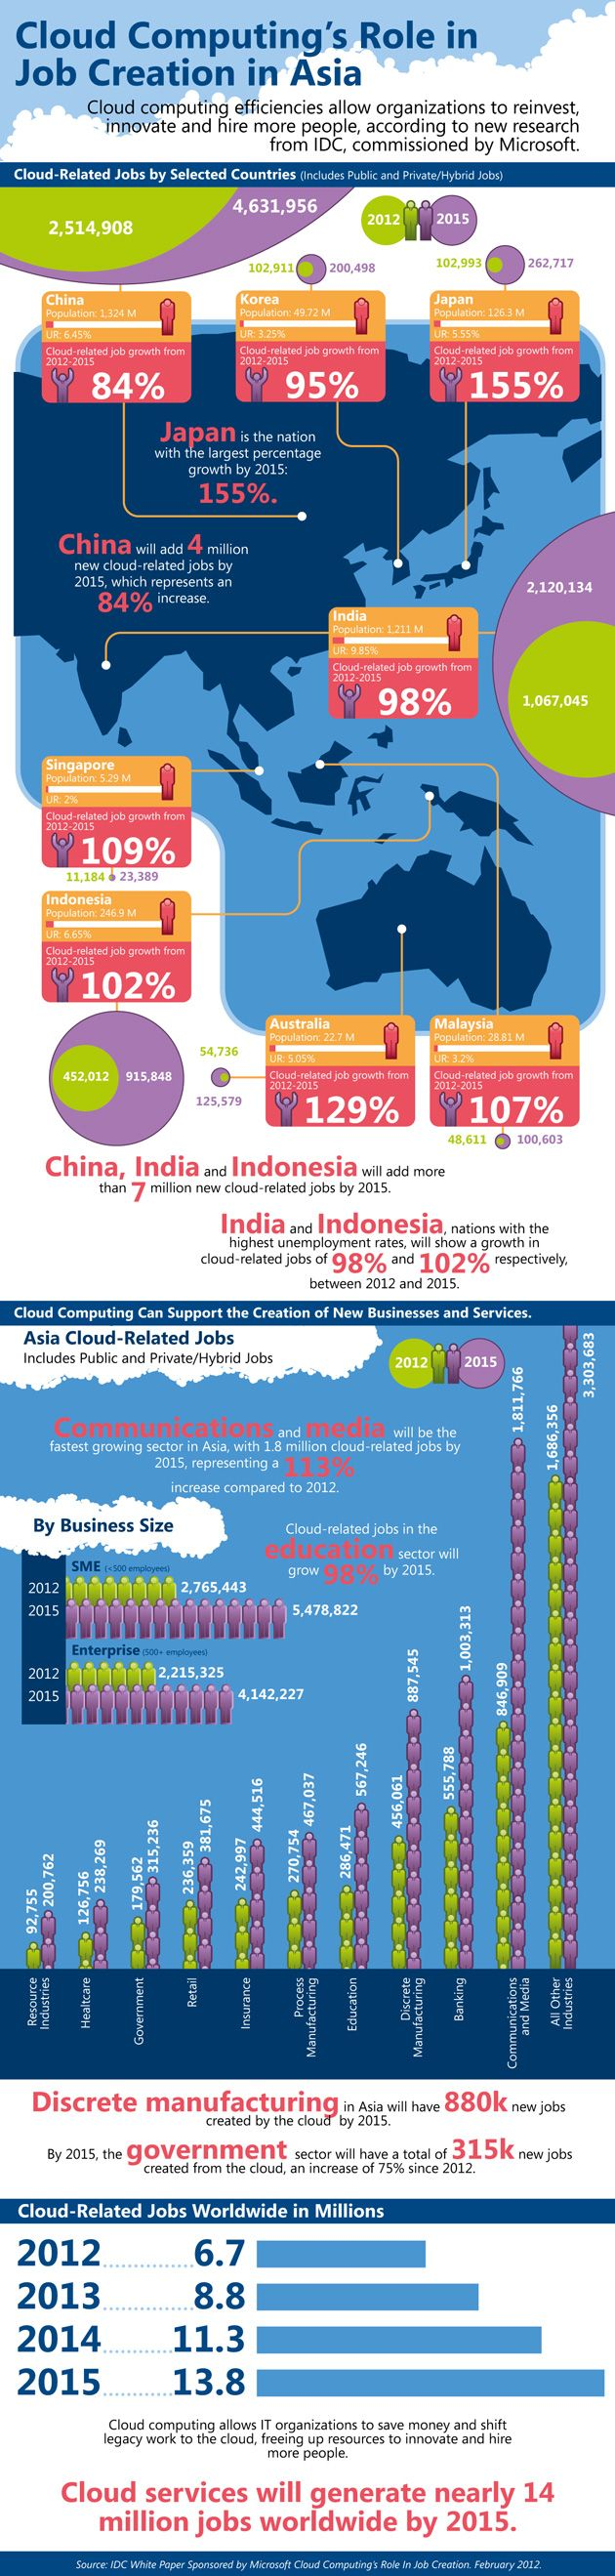 Cloud computing's role in job creation in Asia, More cloud management positions are arising across the world